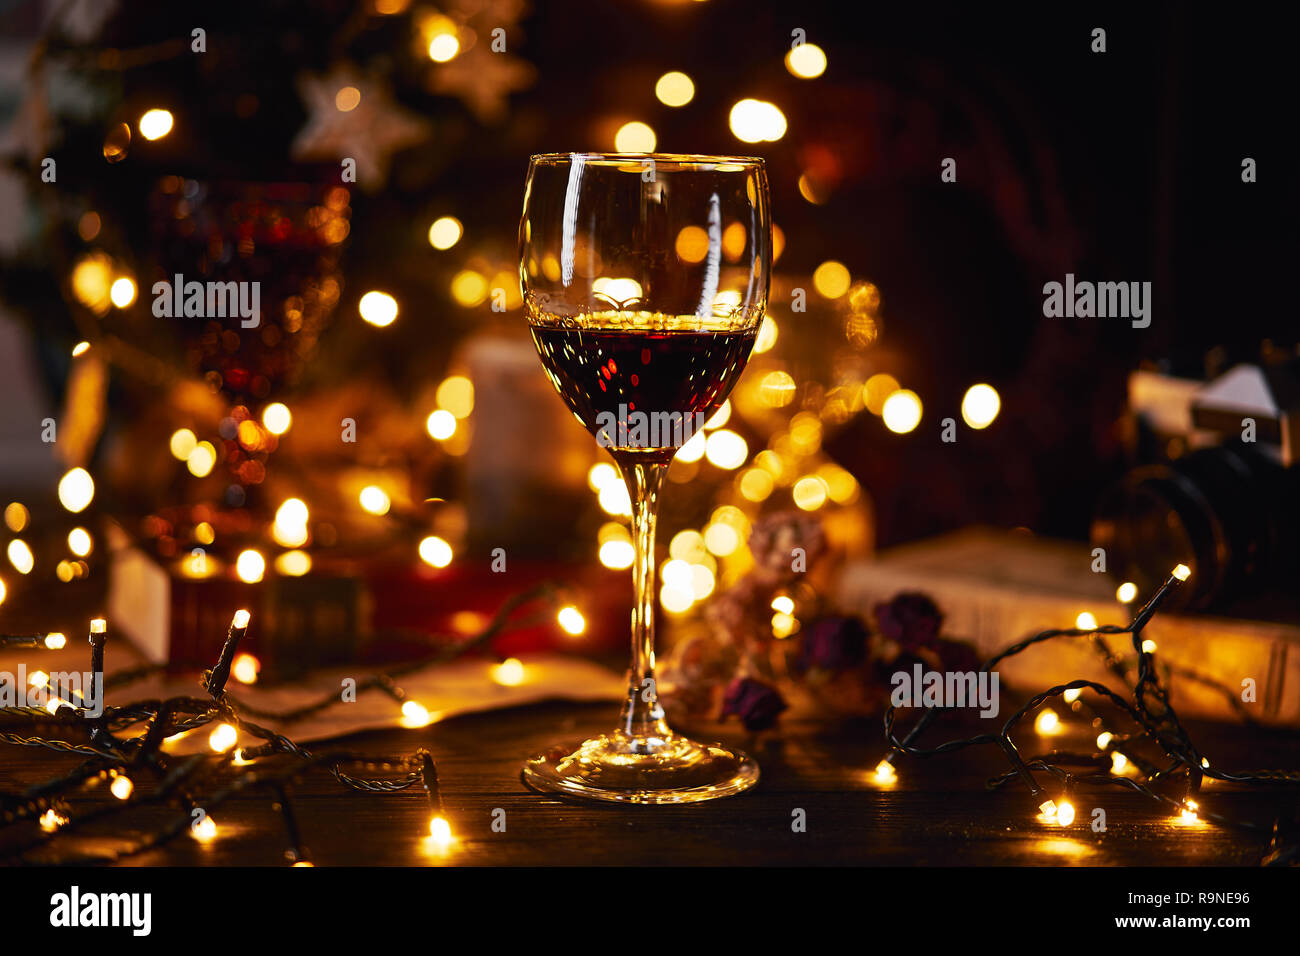 In the Winelight